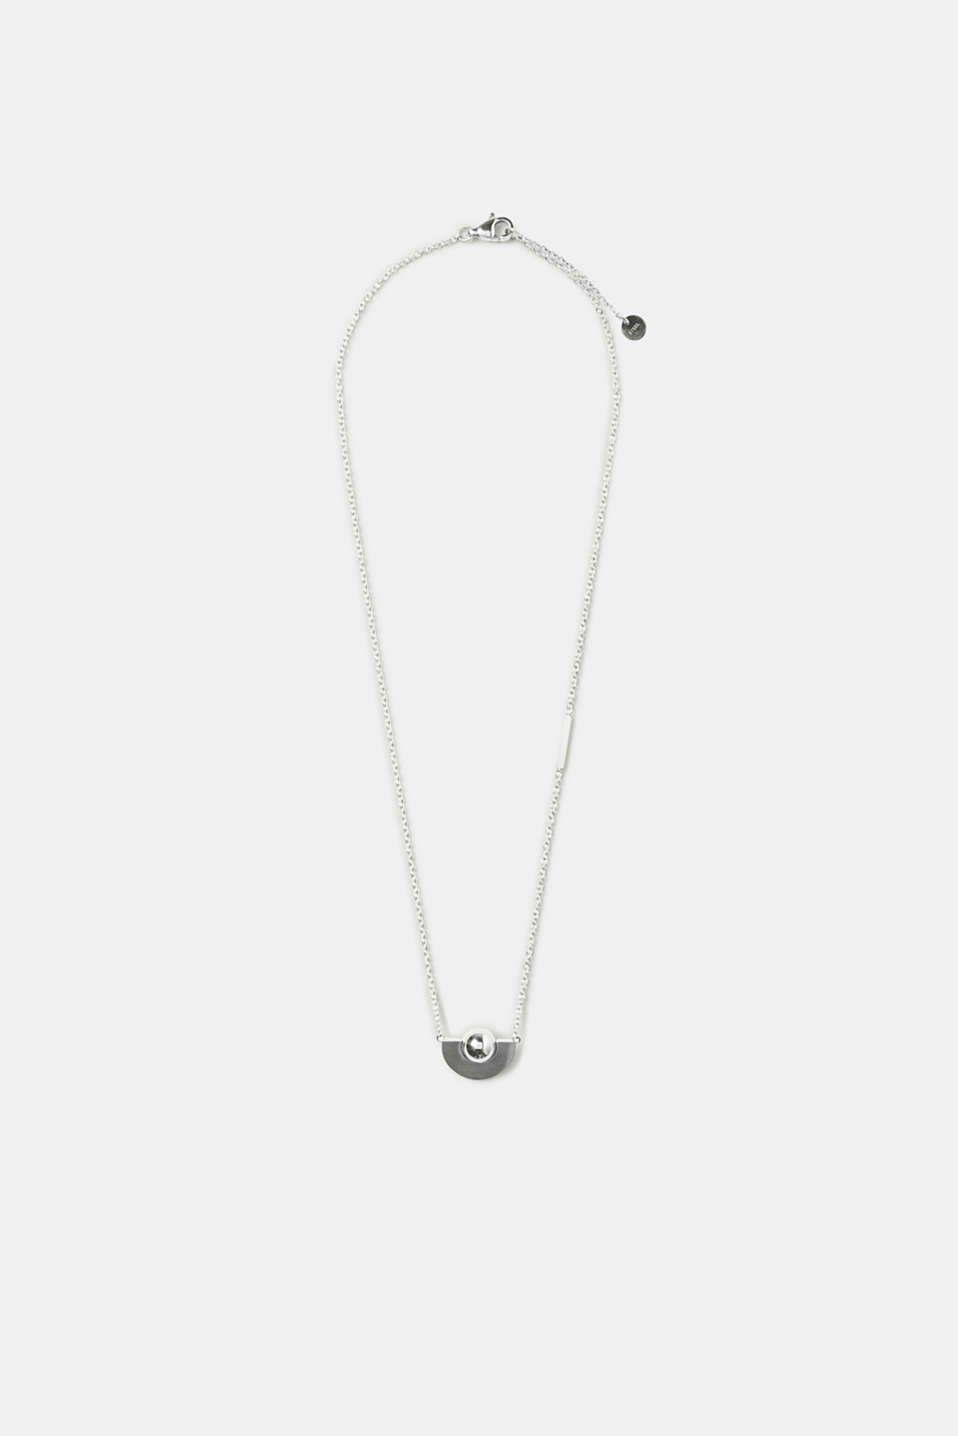 Esprit - Necklace with a pendant, in stainless steel